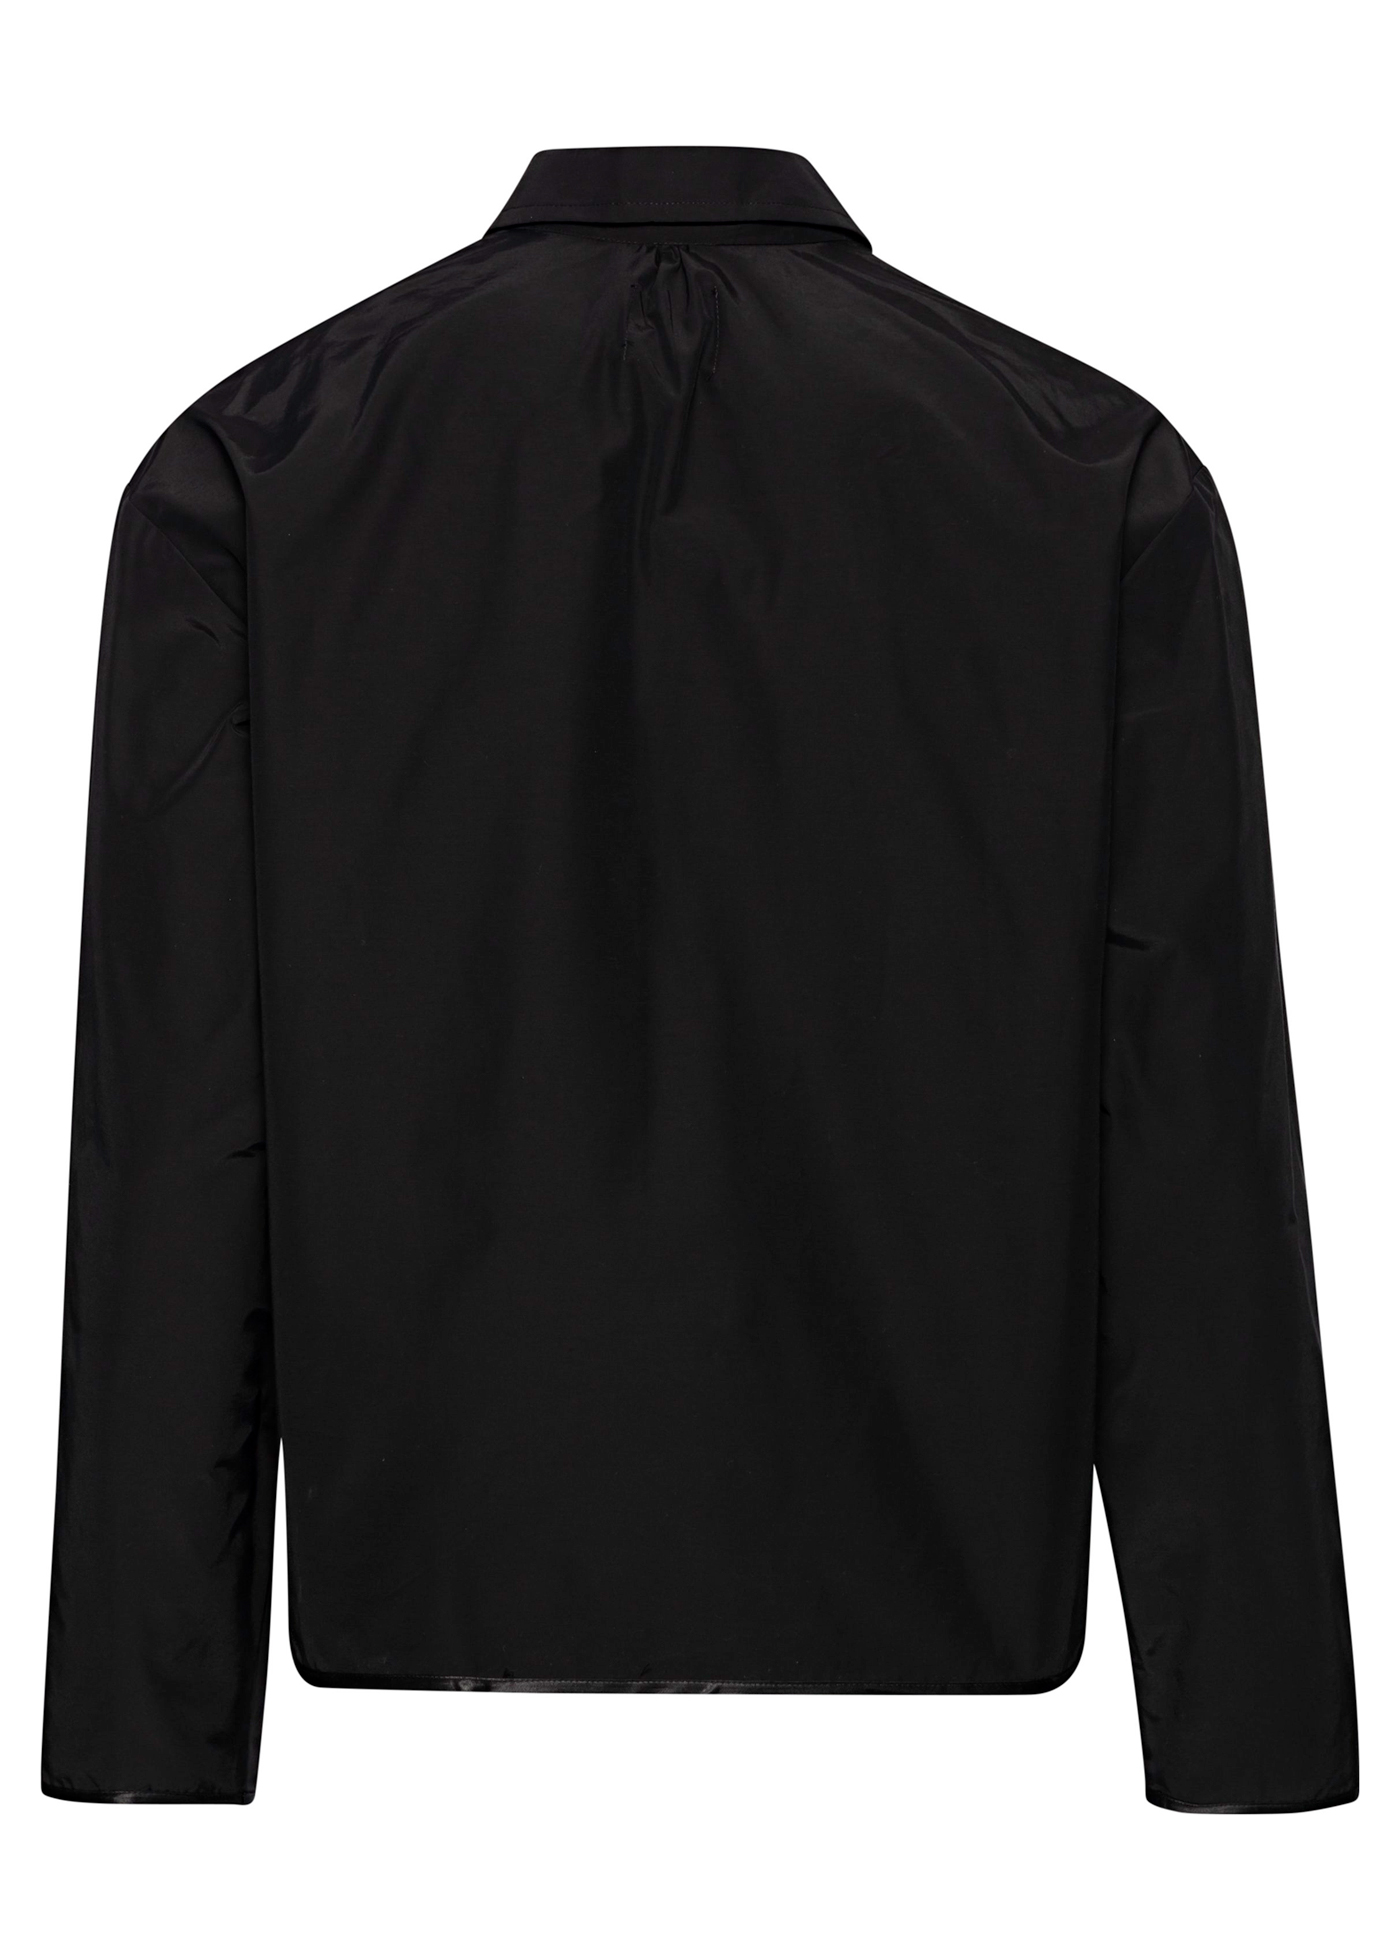 L/S POLO image number 1